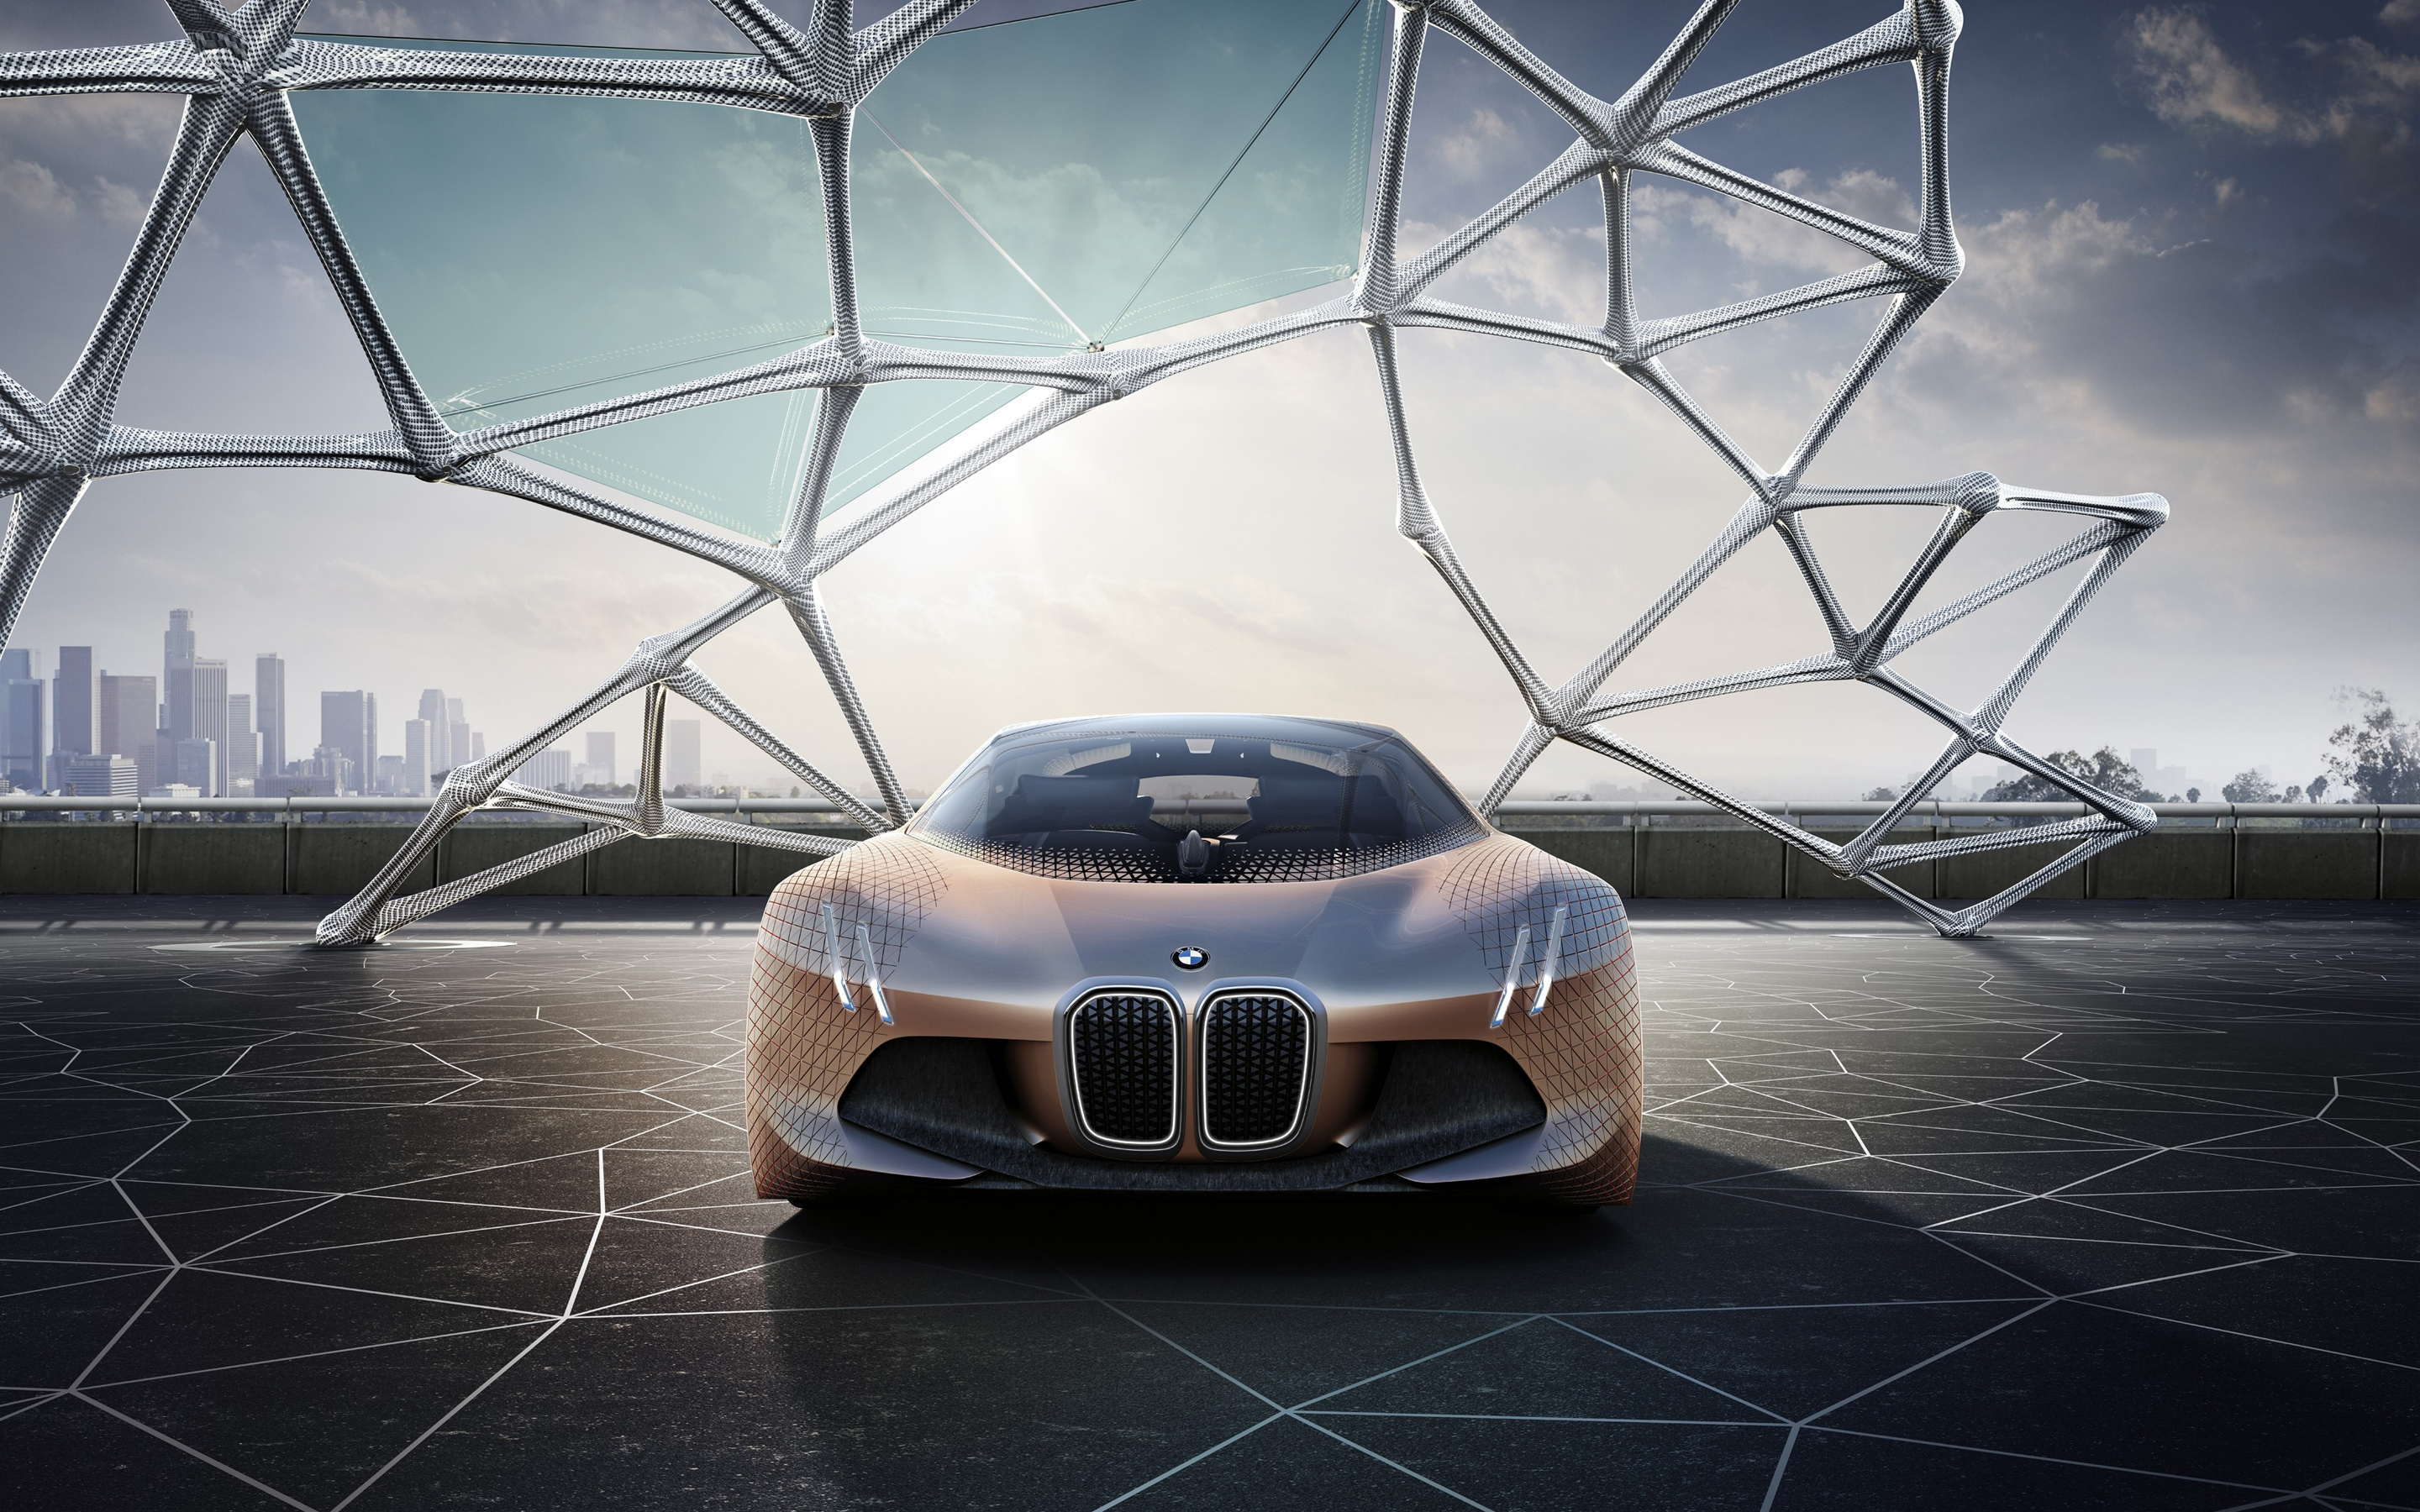 BMW Vision Next 100 Future Car 4K Wallpaper  HD Car Wallpapers  ID 6314